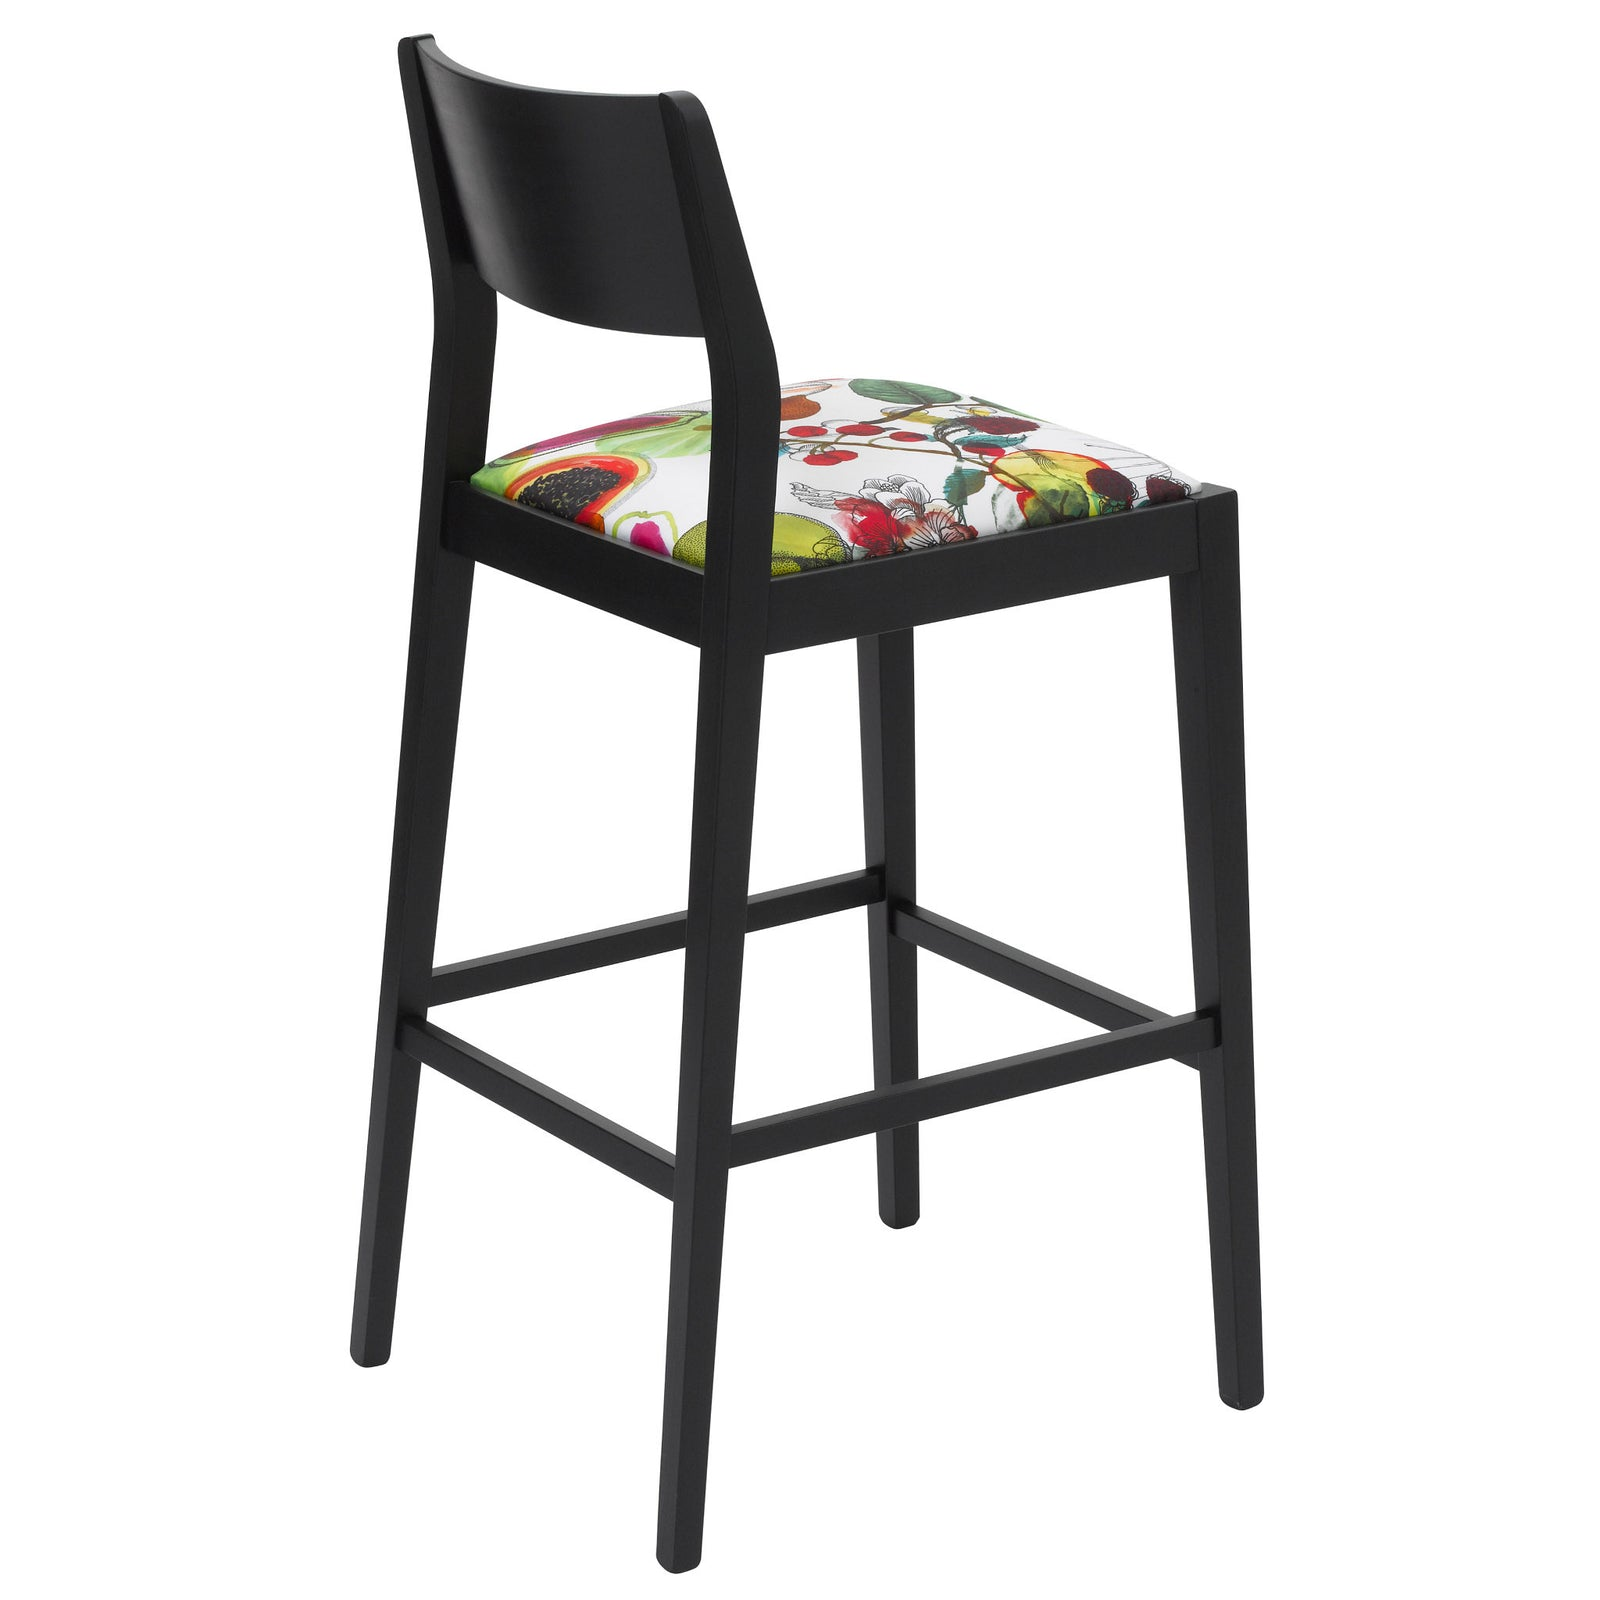 Rear view of the James Bar Stool upholstered with Christian Lacroix fabric, finished in black.